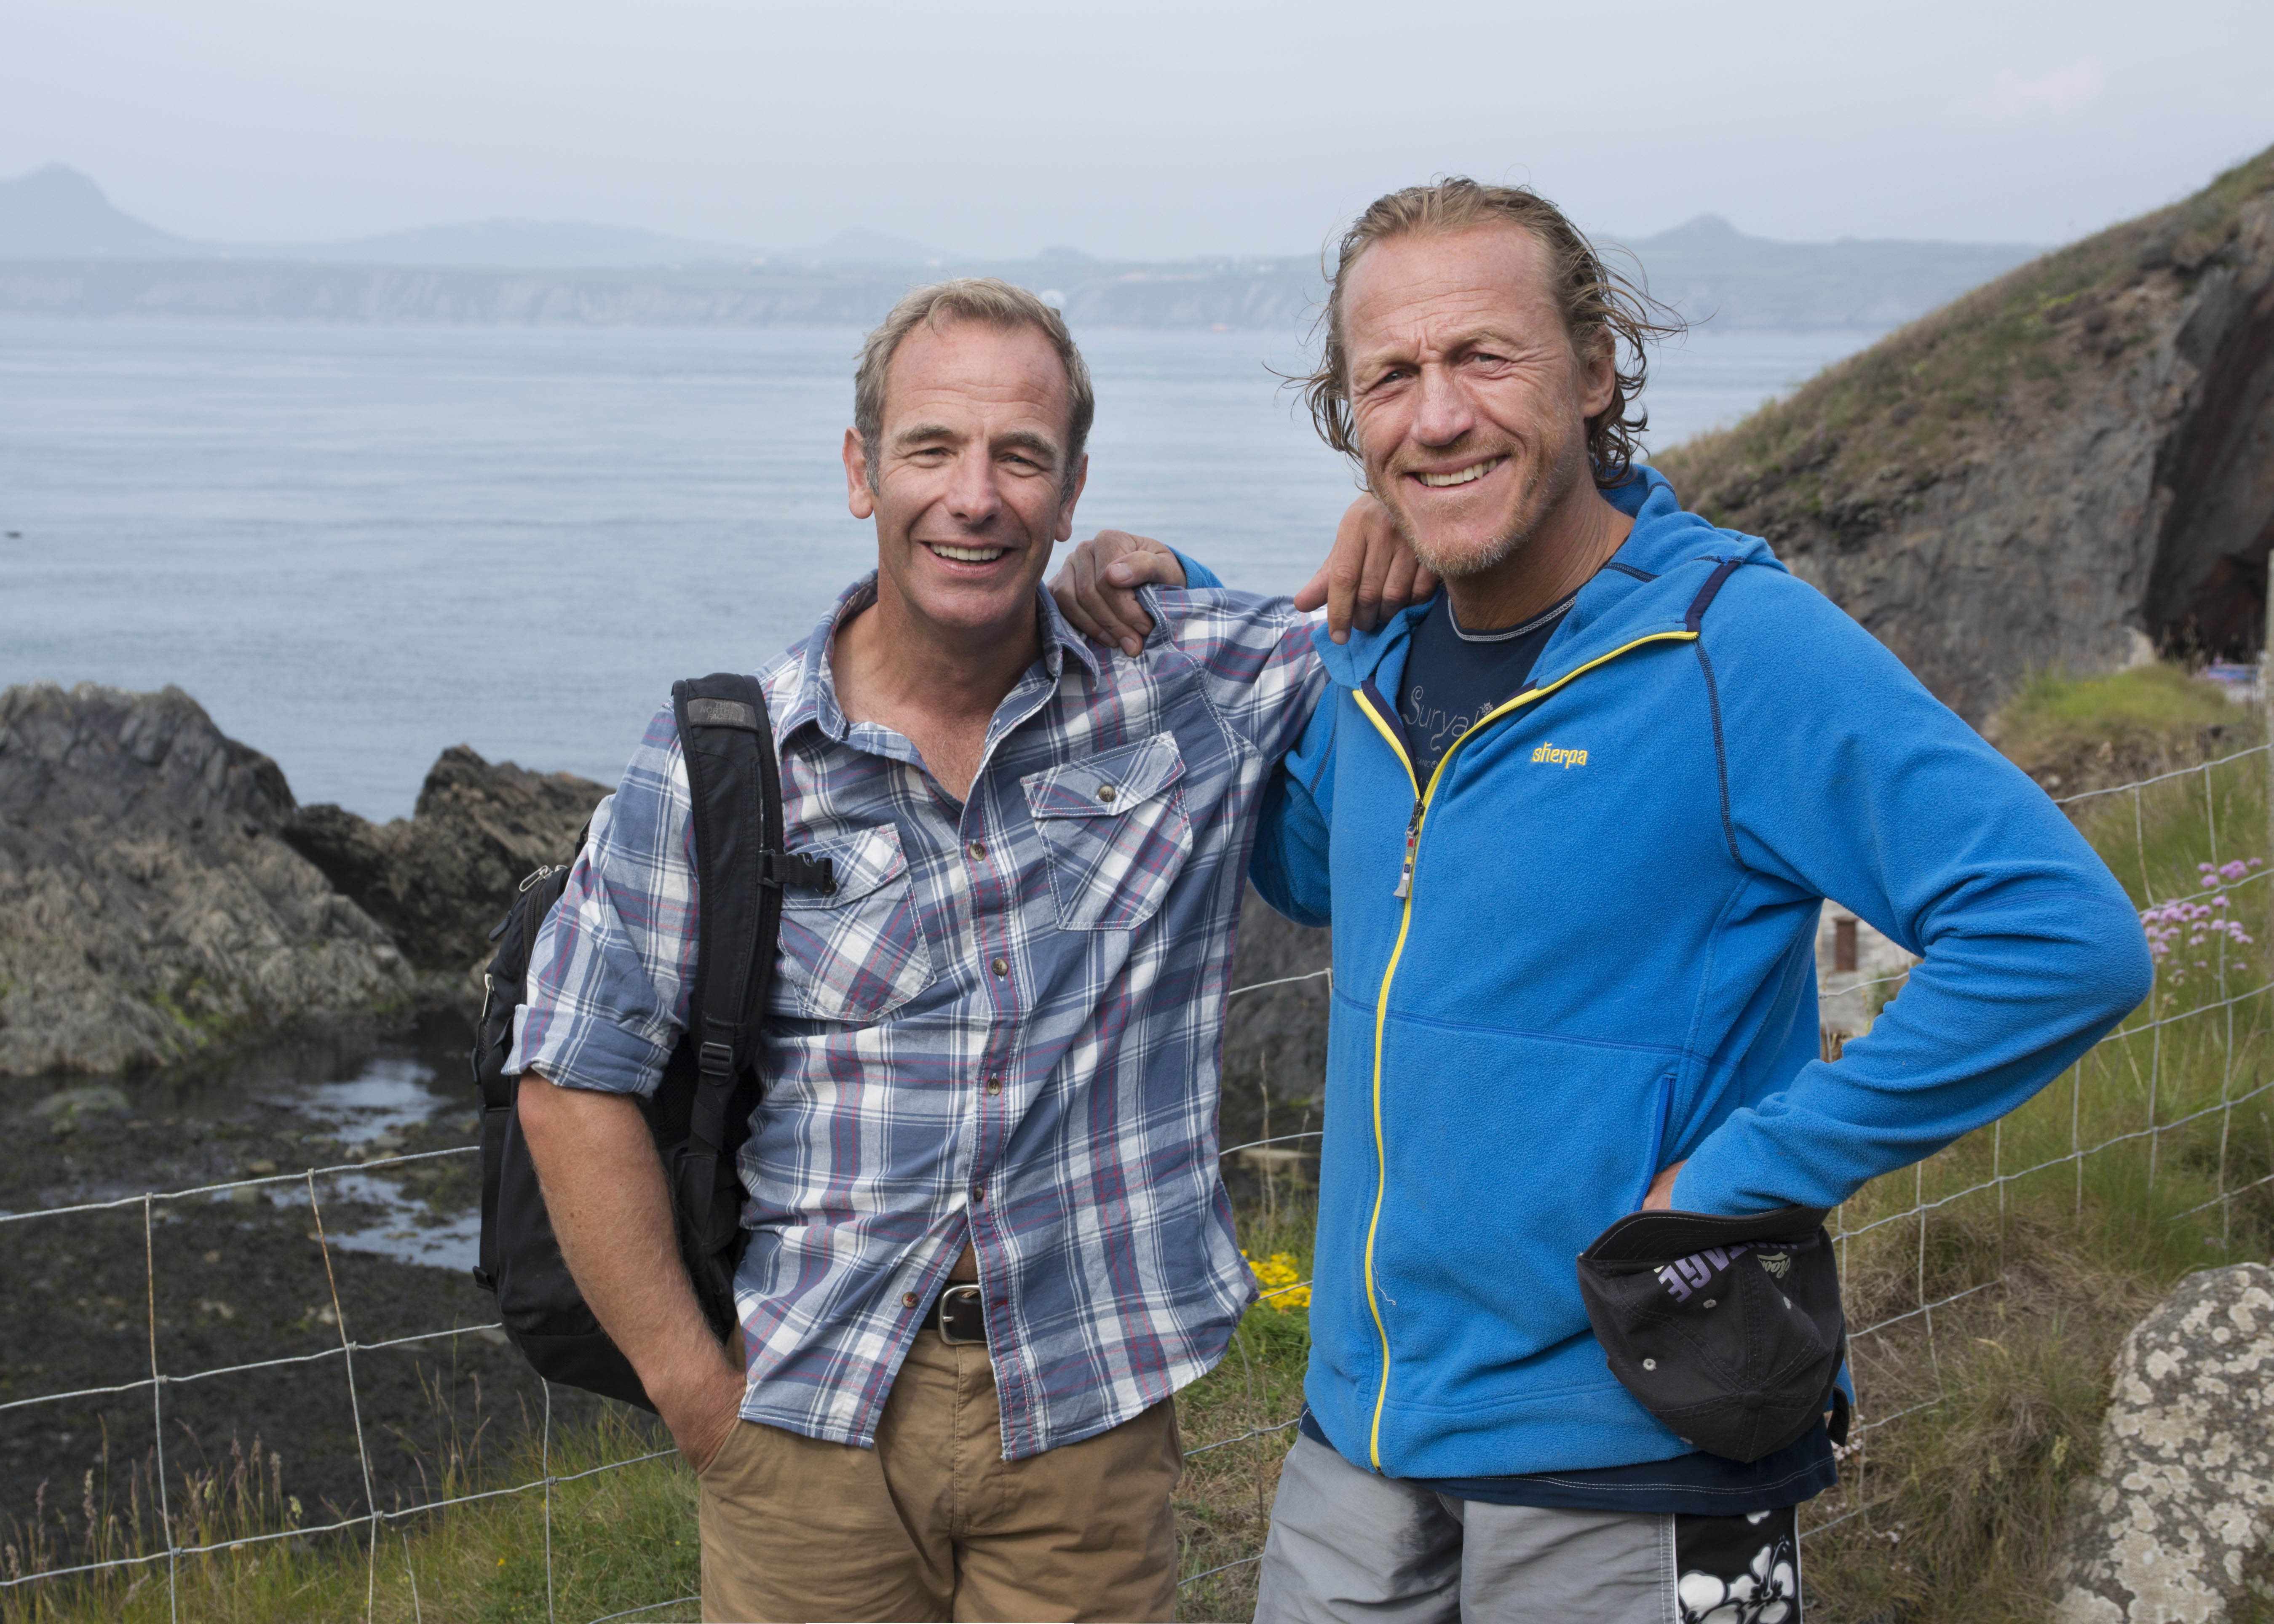 From Shiver Productions TALES FROM THE COAST WITH ROBSON GREEN Ep 2 Pembrokeshire Tuesday 7th February 2017 on ITV Pictured: Robson Green reunites with former Soldier Soldier co-star and singing partner Jerome Flynn - who is now living on the Pembrokeshire coast. In Episode Two, Robson visits one of the most exciting and dramatic stretches of coastline in Britain as he explores the hidden coves and remote islands of Pembrokeshire in South-West Wales. ThereÕs a reunion in store for Robson, as he meets up with his former Soldier Soldier co-star and singing partner Jerome Flynn - who is now living on the Pembrokeshire coast. They go sea kayaking around Ramsey Island and Robson attempts to navigate some of the most dangerous tidal rapids off British shores. On Skokholm Island, Robson spends twenty-four hours living and working with its only human inhabitants - wildlife wardens Giselle Eagle and Richard Brown, a couple who look after an incredible array of seabirds - including the largest concentration of Manx Shearwaters in the world. Robson also goes cliff jumping in a disused quarry known as The Blue Lagoon and meets a man who creates giant sand art at Mwnt Beach. © ITV Photographer: Alysoun Sharpe For further information please contact Peter Gray 0207 157 3046 peter.gray@itv.com This photograph is © ITV and can only be reproduced for editorial purposes directly in connection with the programme TALES FROM THE COAST WITH ROBSON GREEN or ITV. Once made available by the ITV Picture Desk, this photograph can be reproduced once only up until the Transmission date and no reproduction fee will be charged. Any subsequent usage may incur a fee. This photograph must not be syndicated to any other publication or website, or permanently archived, without the express written permission of ITV Picture Desk. Full Terms and conditions are available on the website www.itvpictures.com